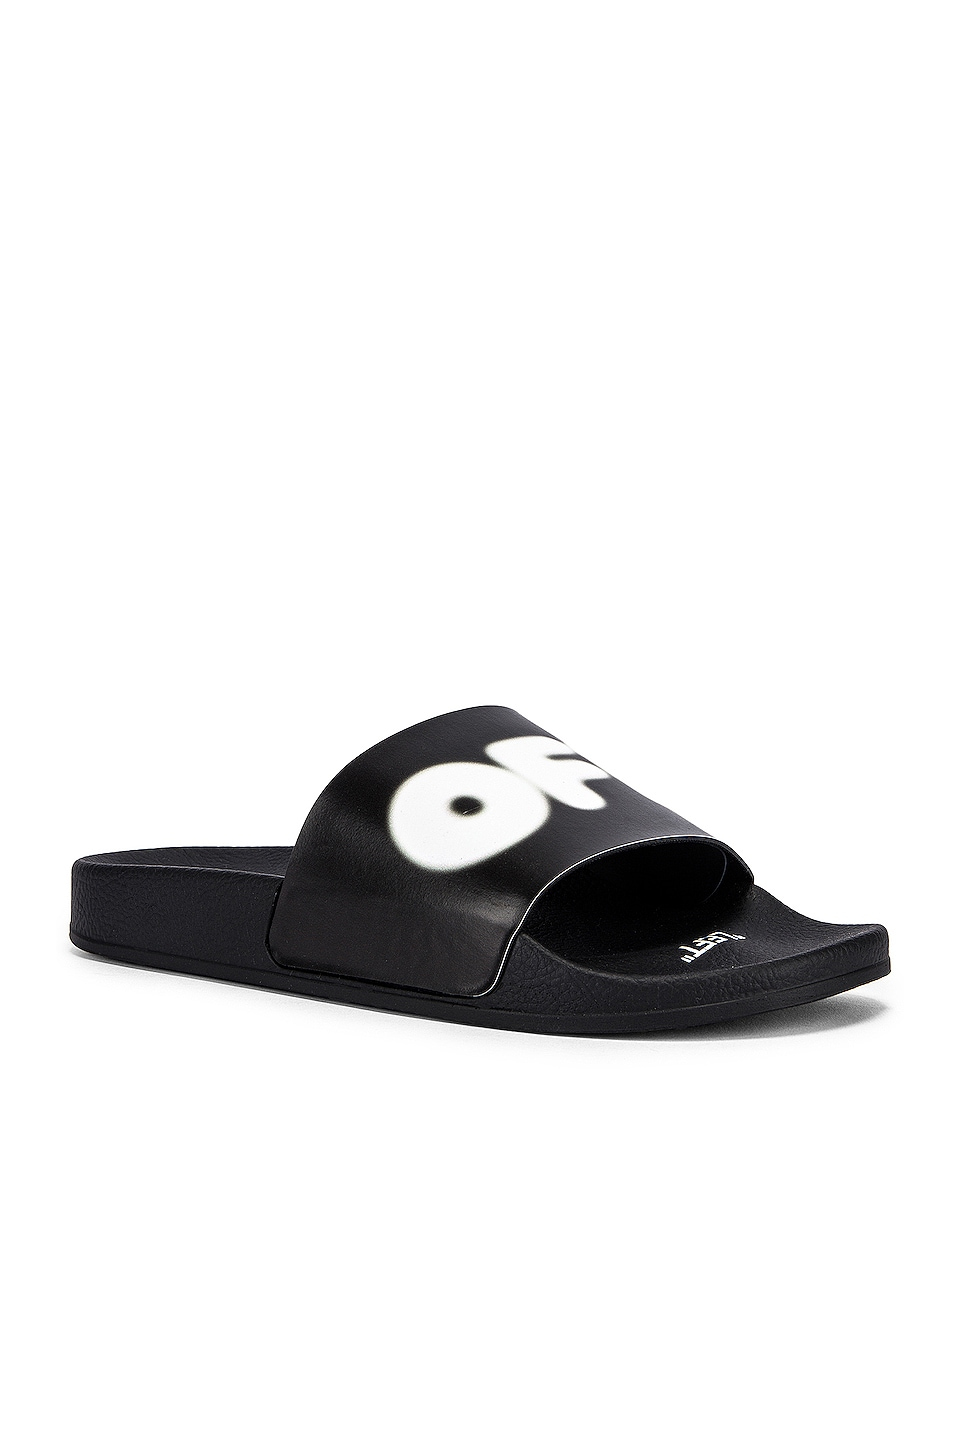 OFF-WHITE EXCLUSIVE Slides in Black